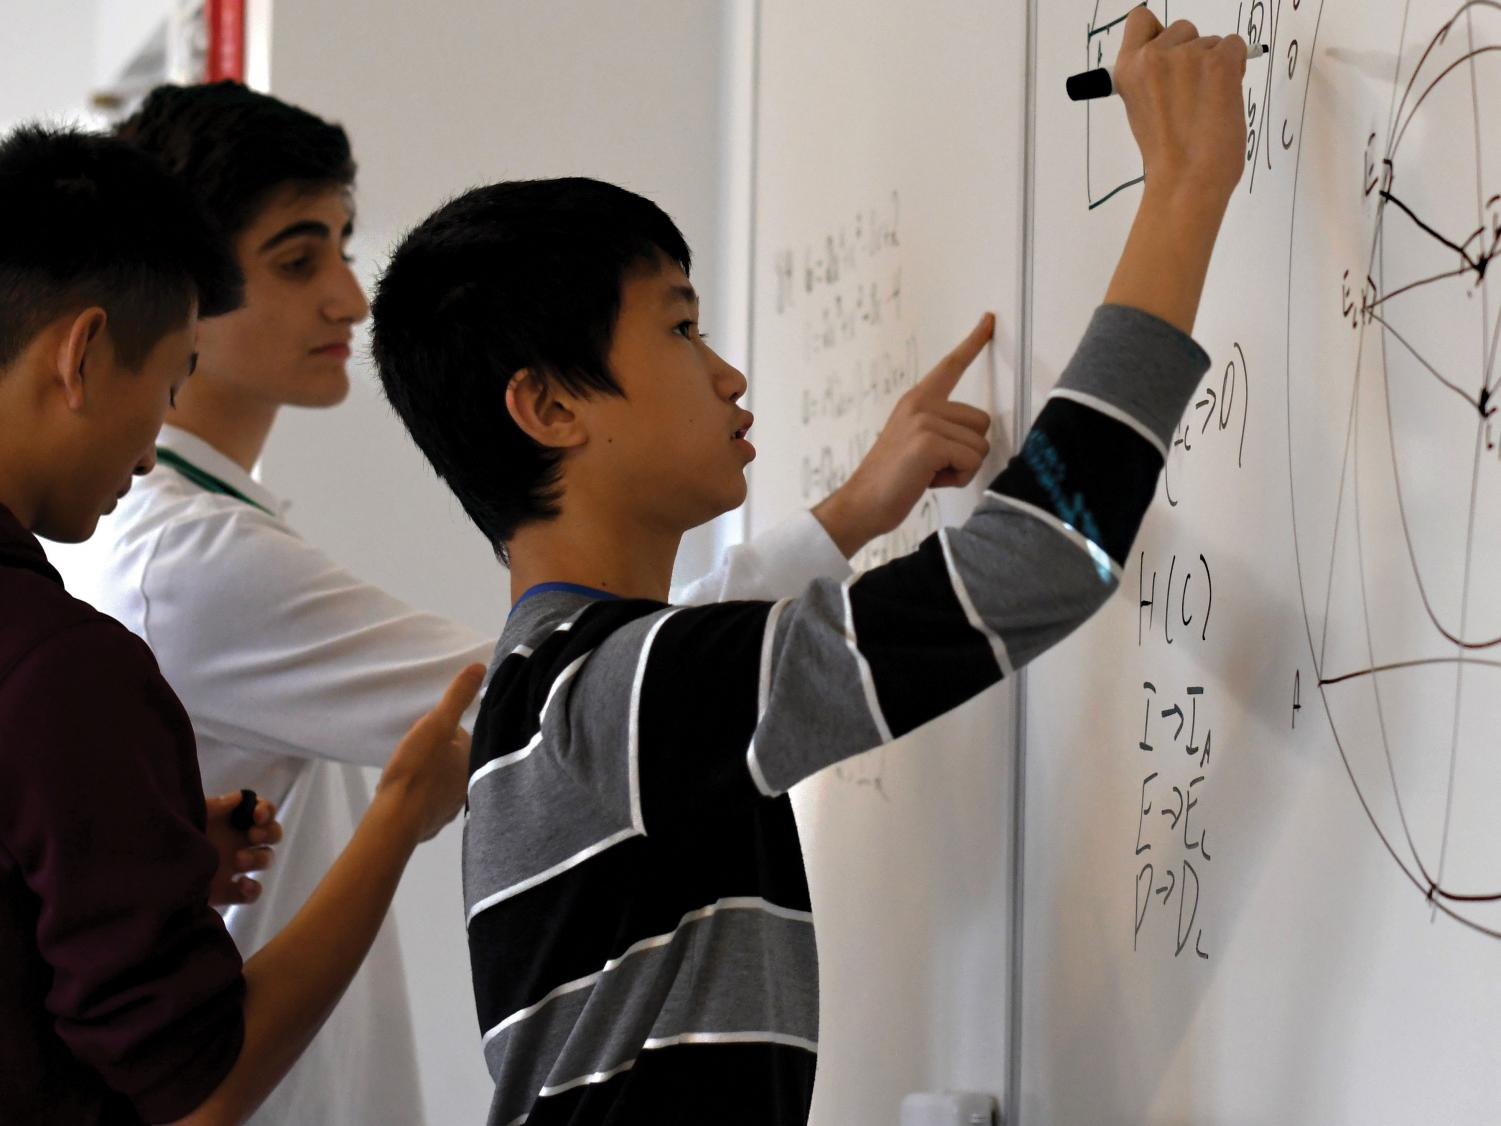 FINDING THE FORMULA: Surrounded by collaborating Mathematics team members, freshman Jeffery Chen works through questions on the white board. He said he enjoys coming up with creative solutions to difficult  locgic problems.